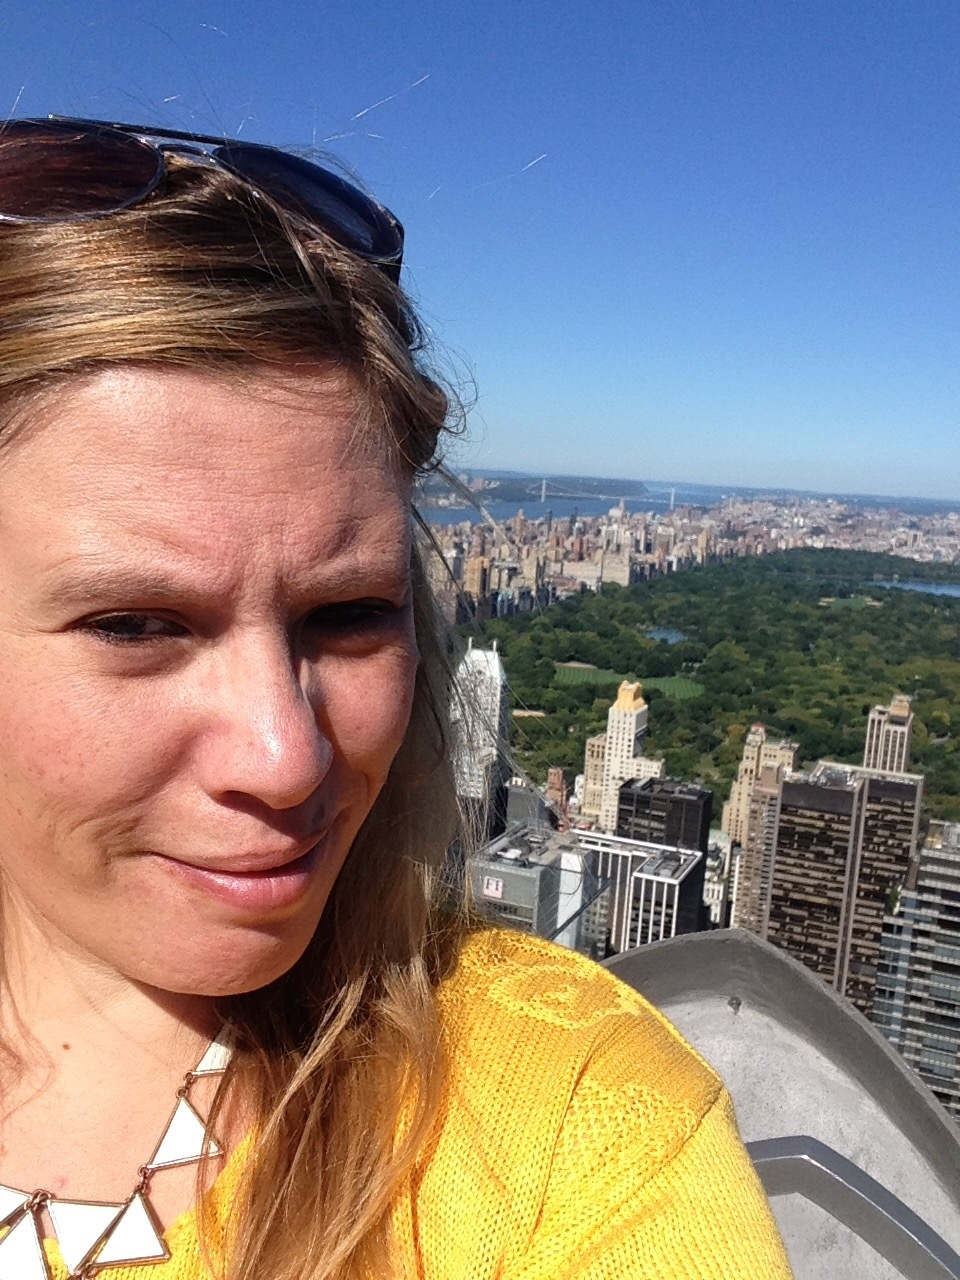 Georgina enjoying the views of New York City, on a former press trip in her previous role as a travel journalist